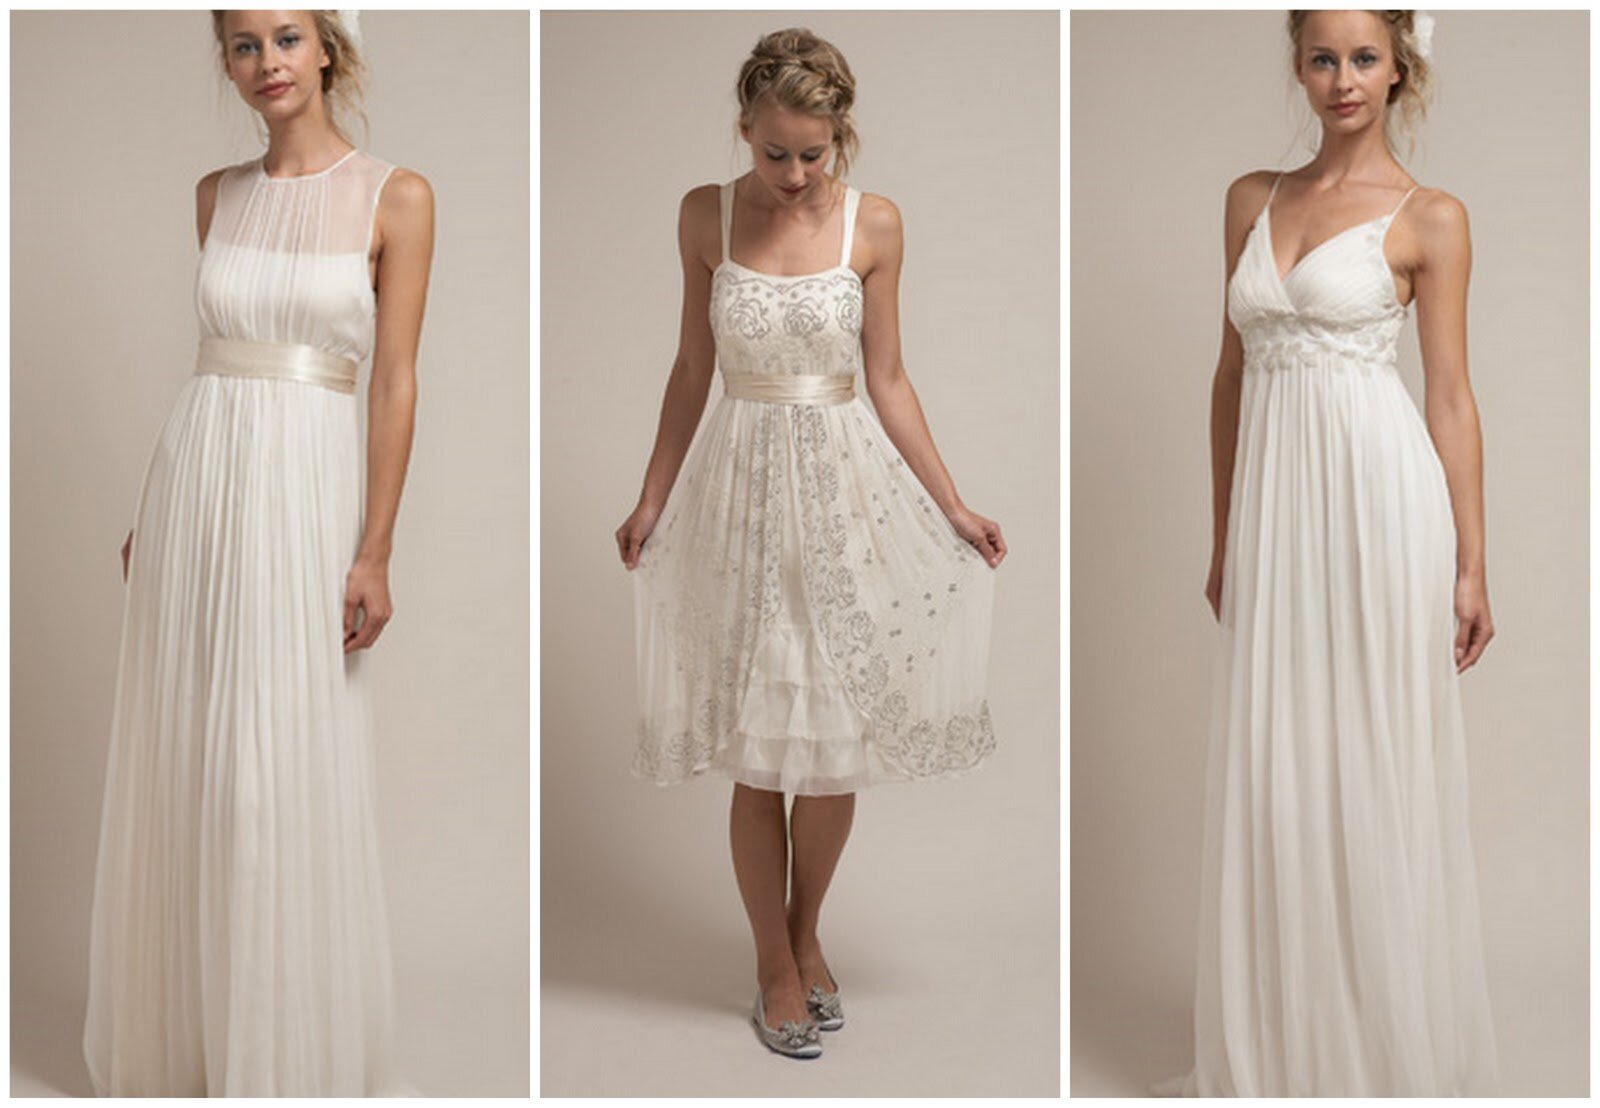 Summer style wedding dresses Photo - 5